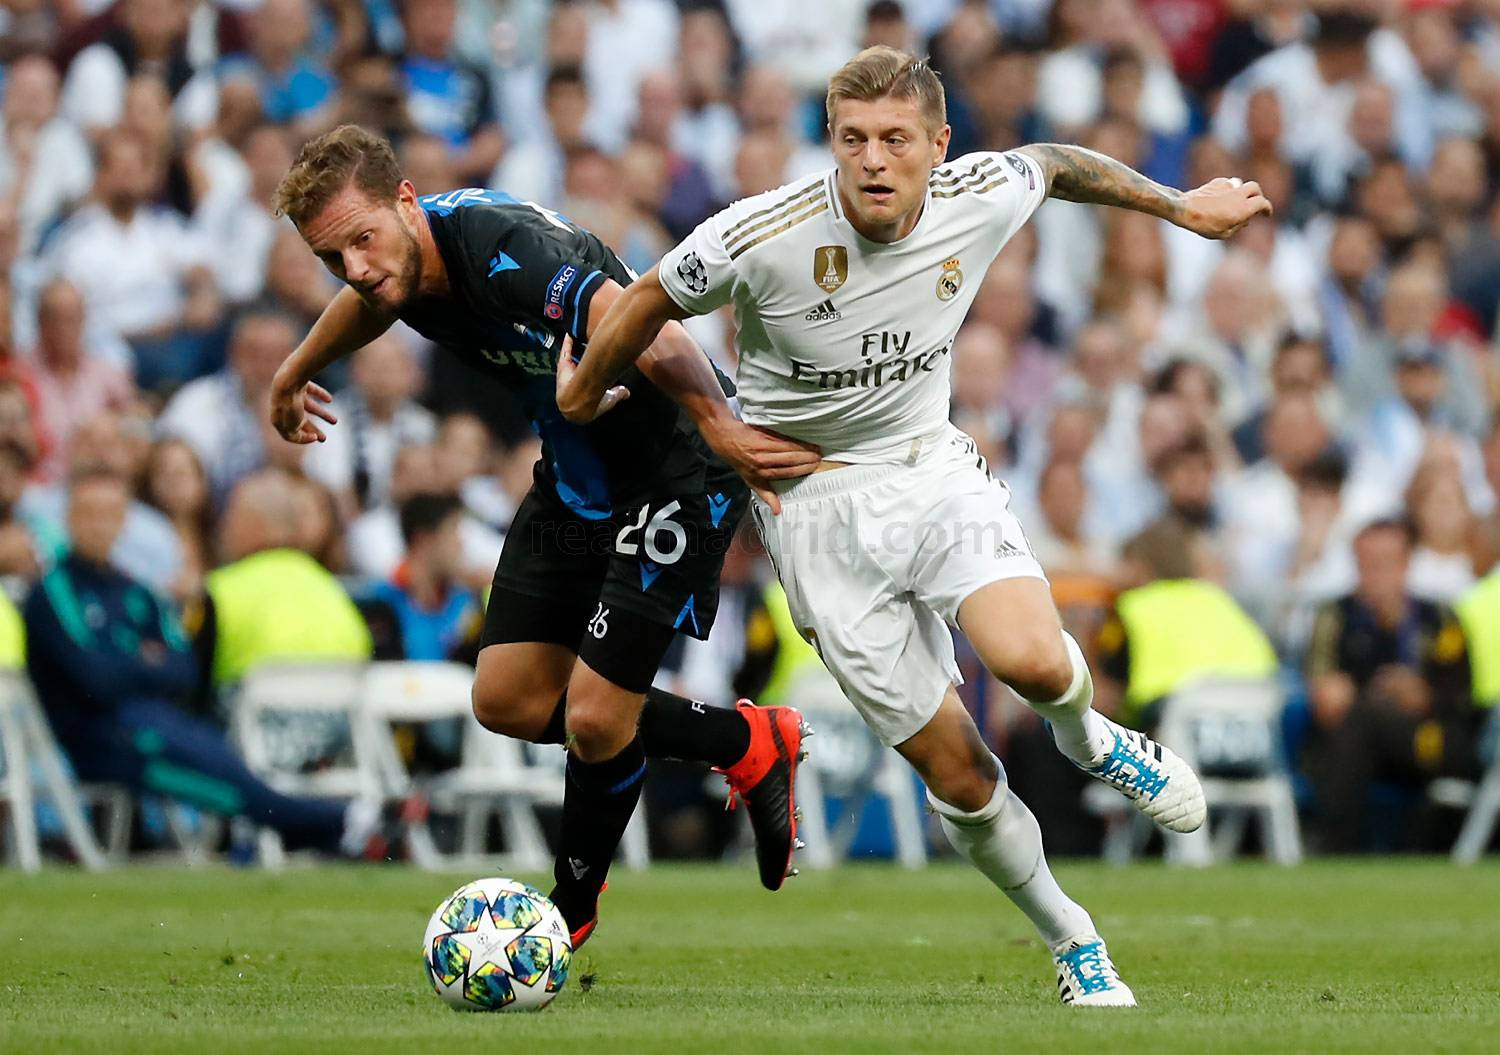 Real Madrid - Real Madrid - Brujas - 01-10-2019